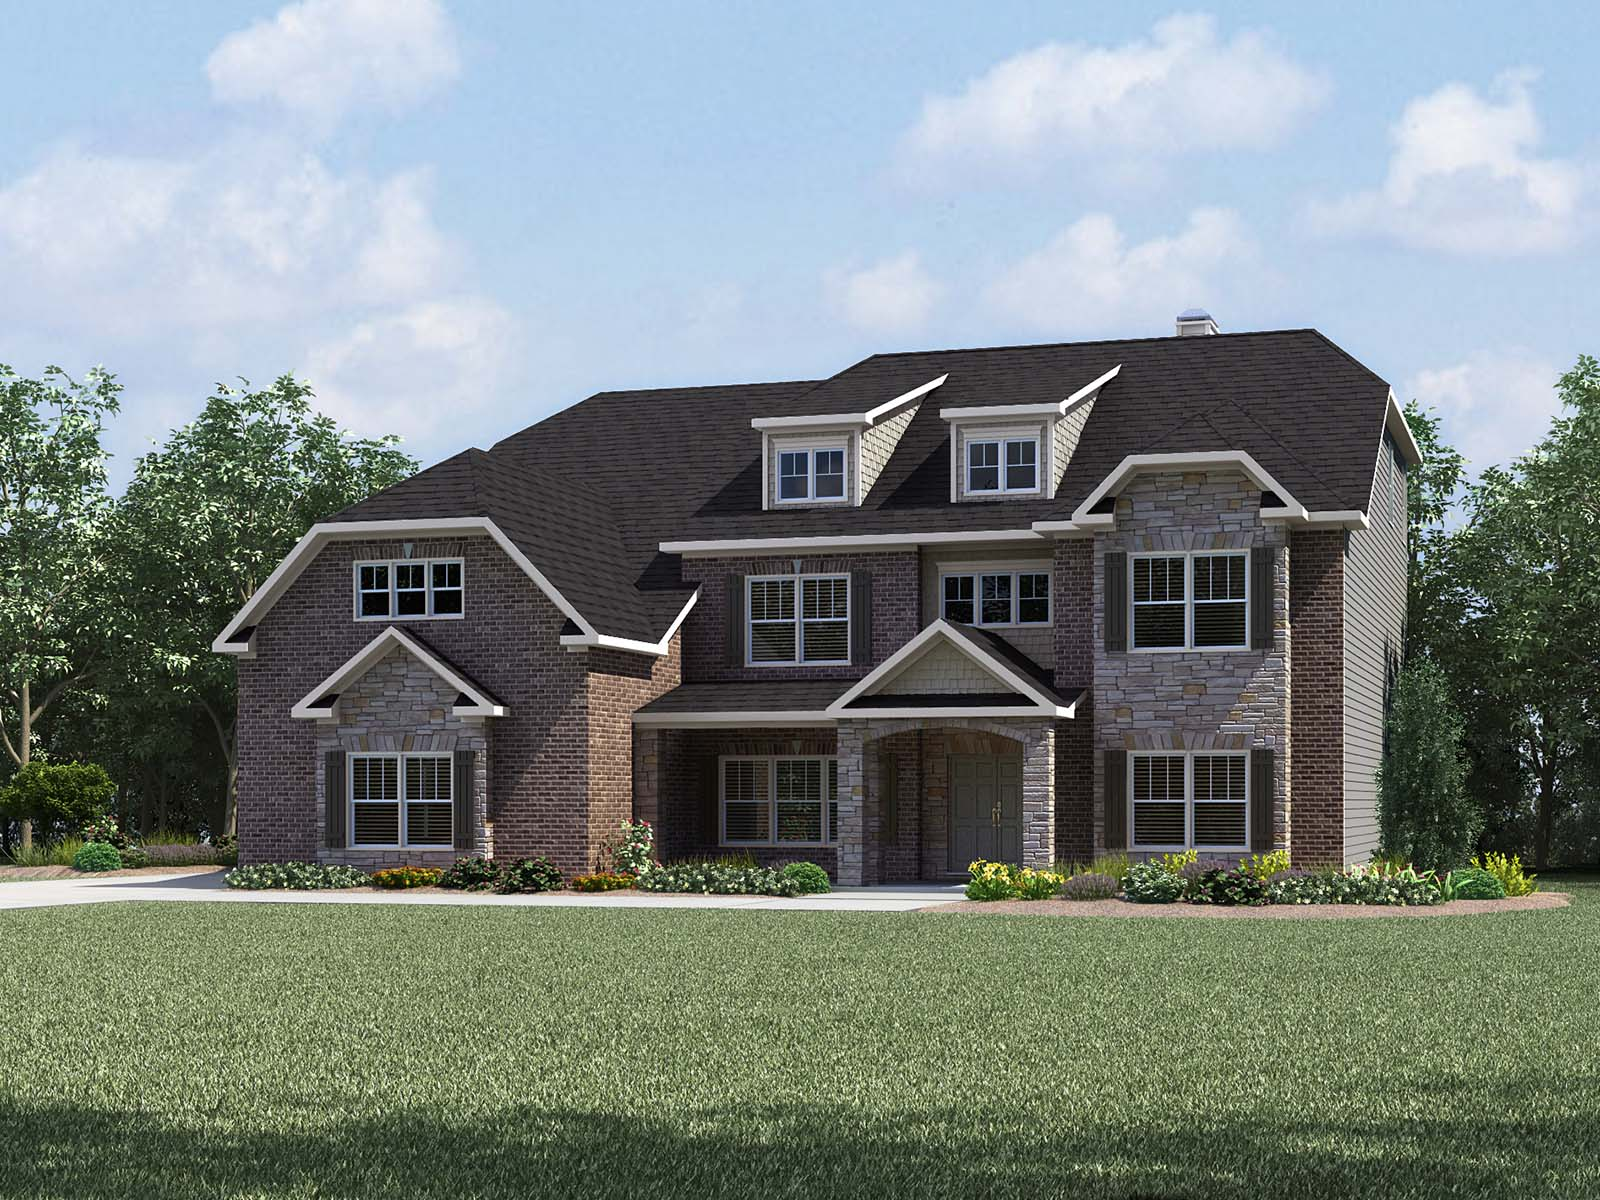 Stonewood Manor By Meritage Homes New